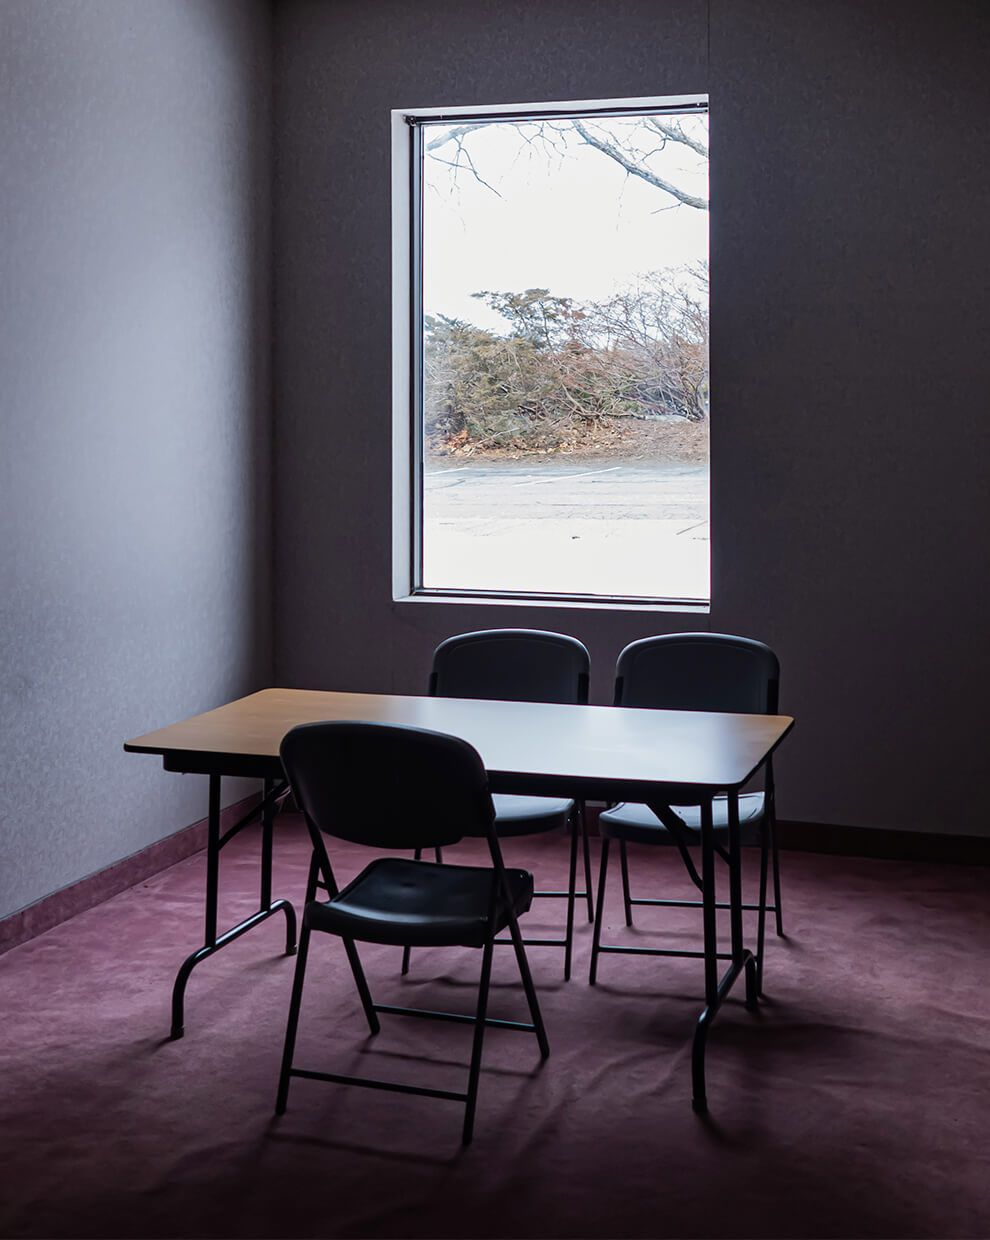 A meeting room left untouched for 20 years